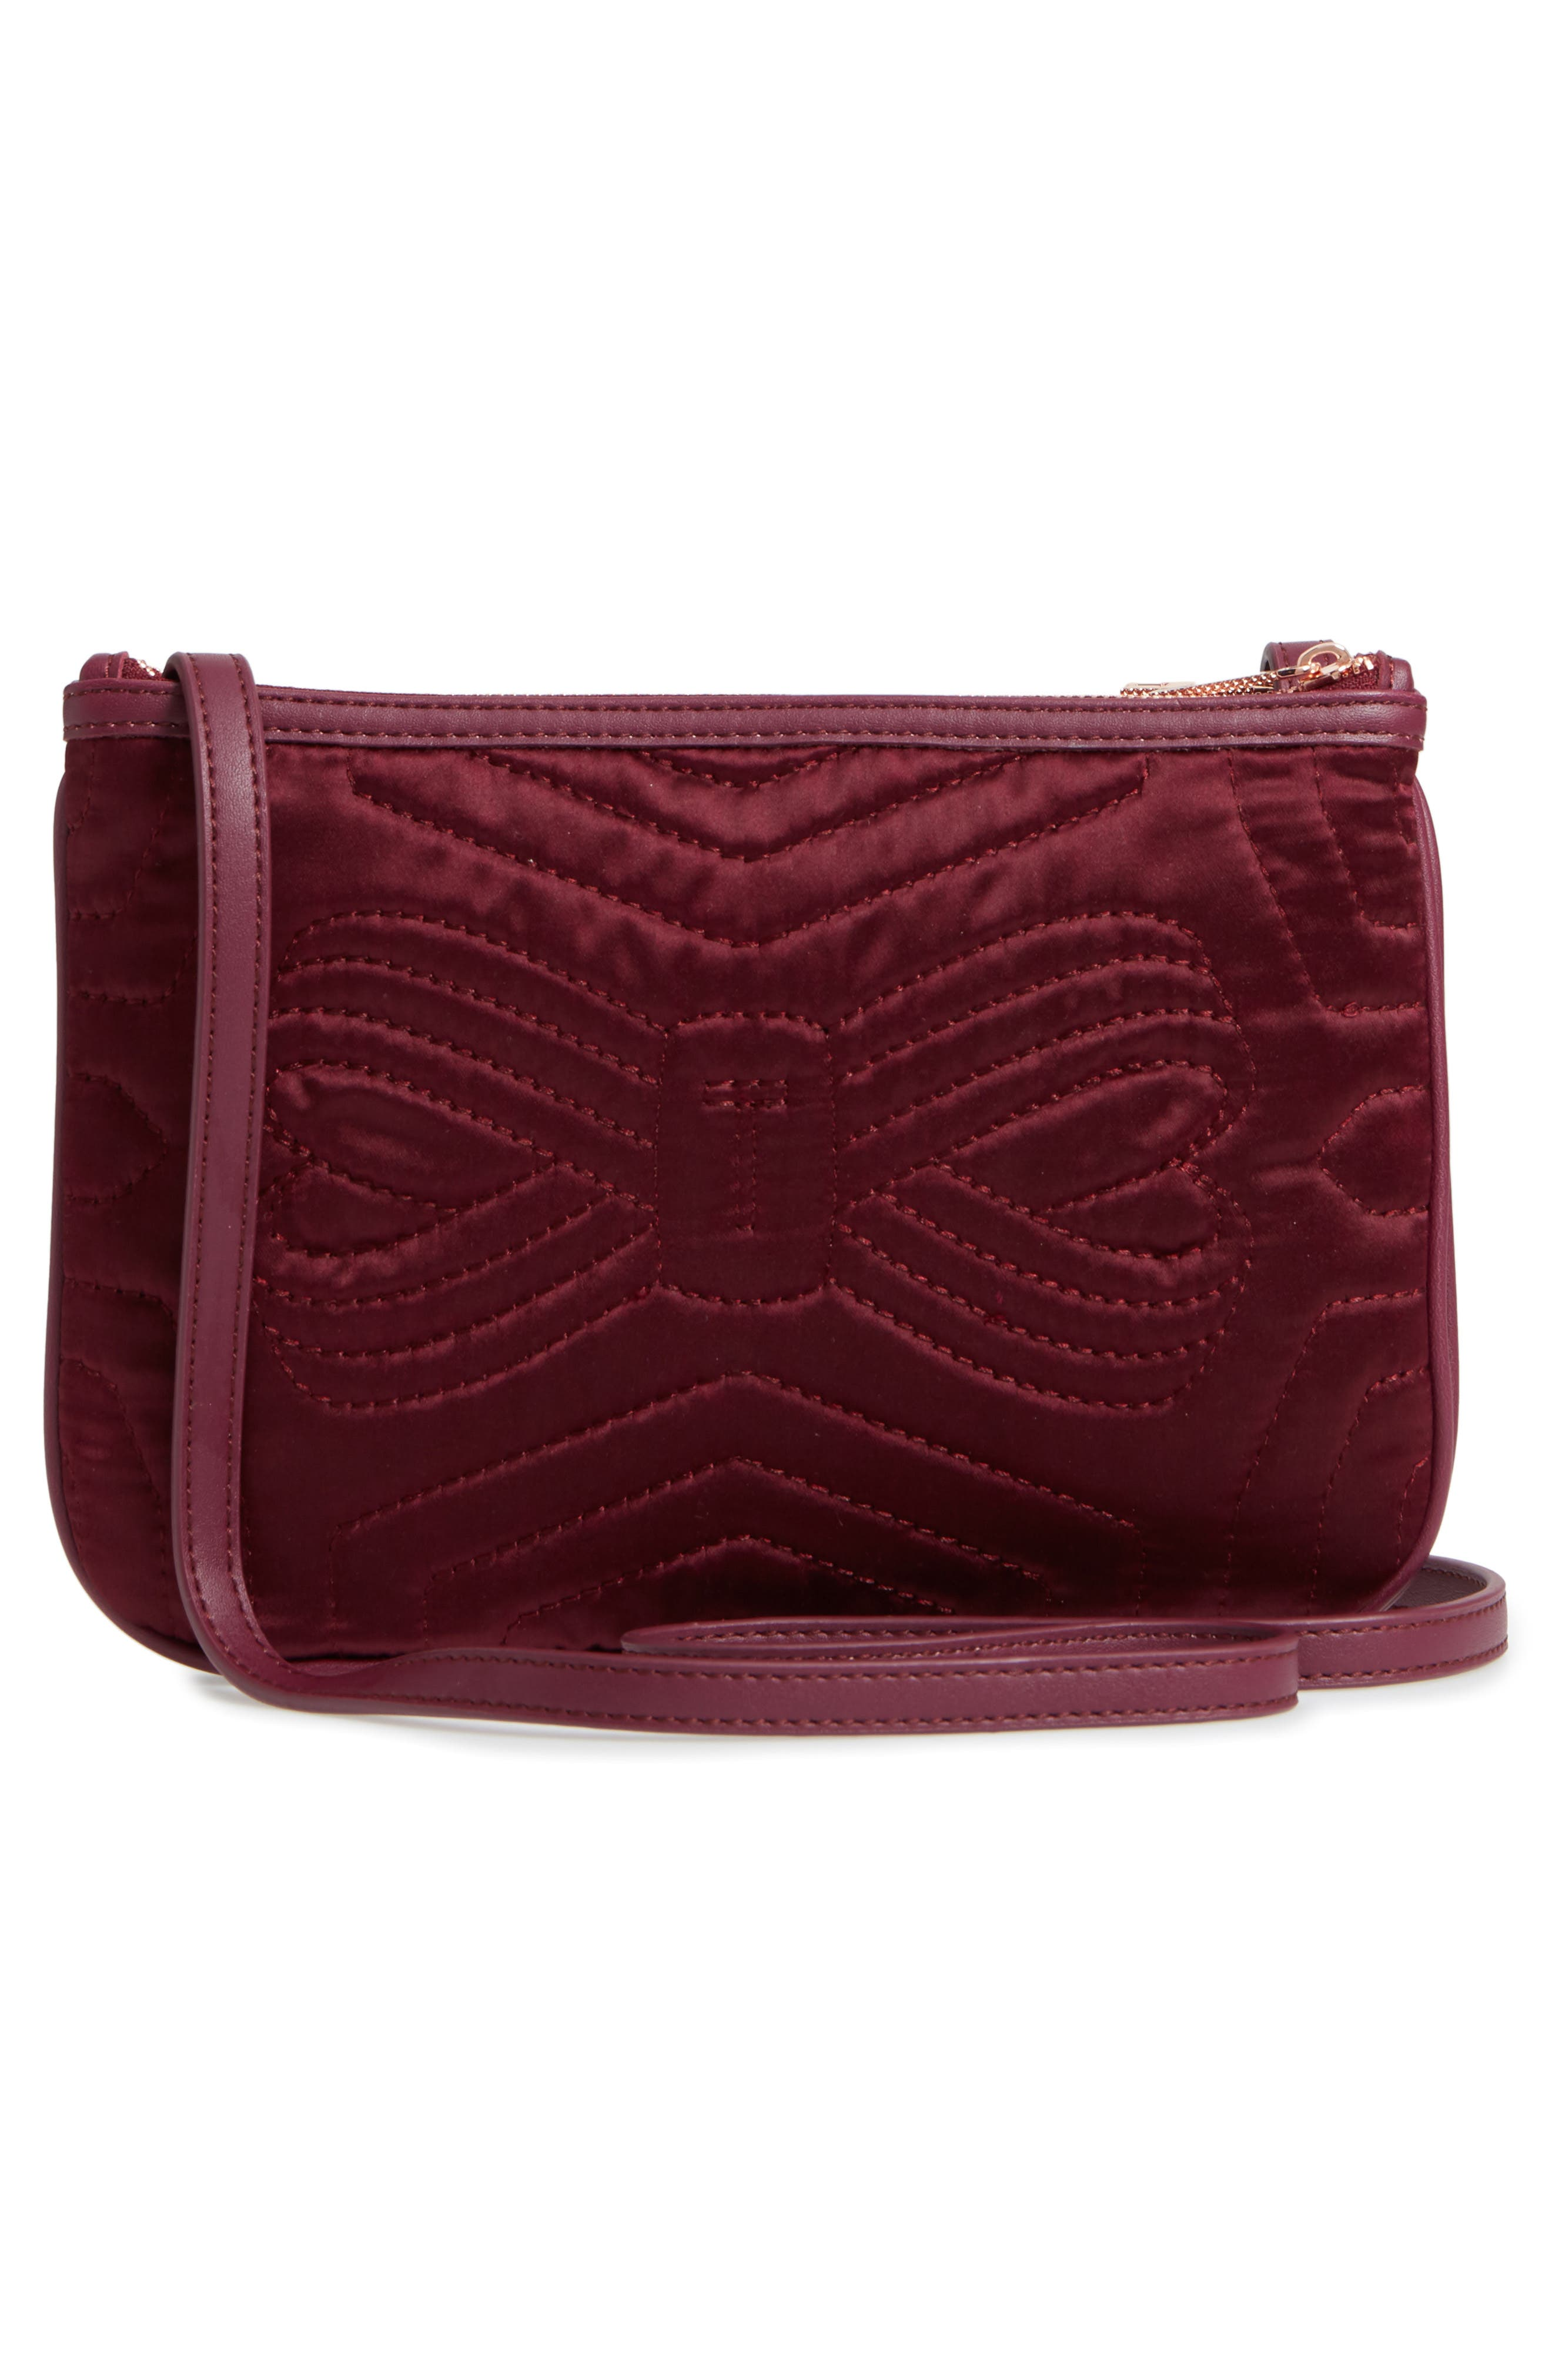 Quilted Bow Crossbody Bag,                             Alternate thumbnail 3, color,                             930